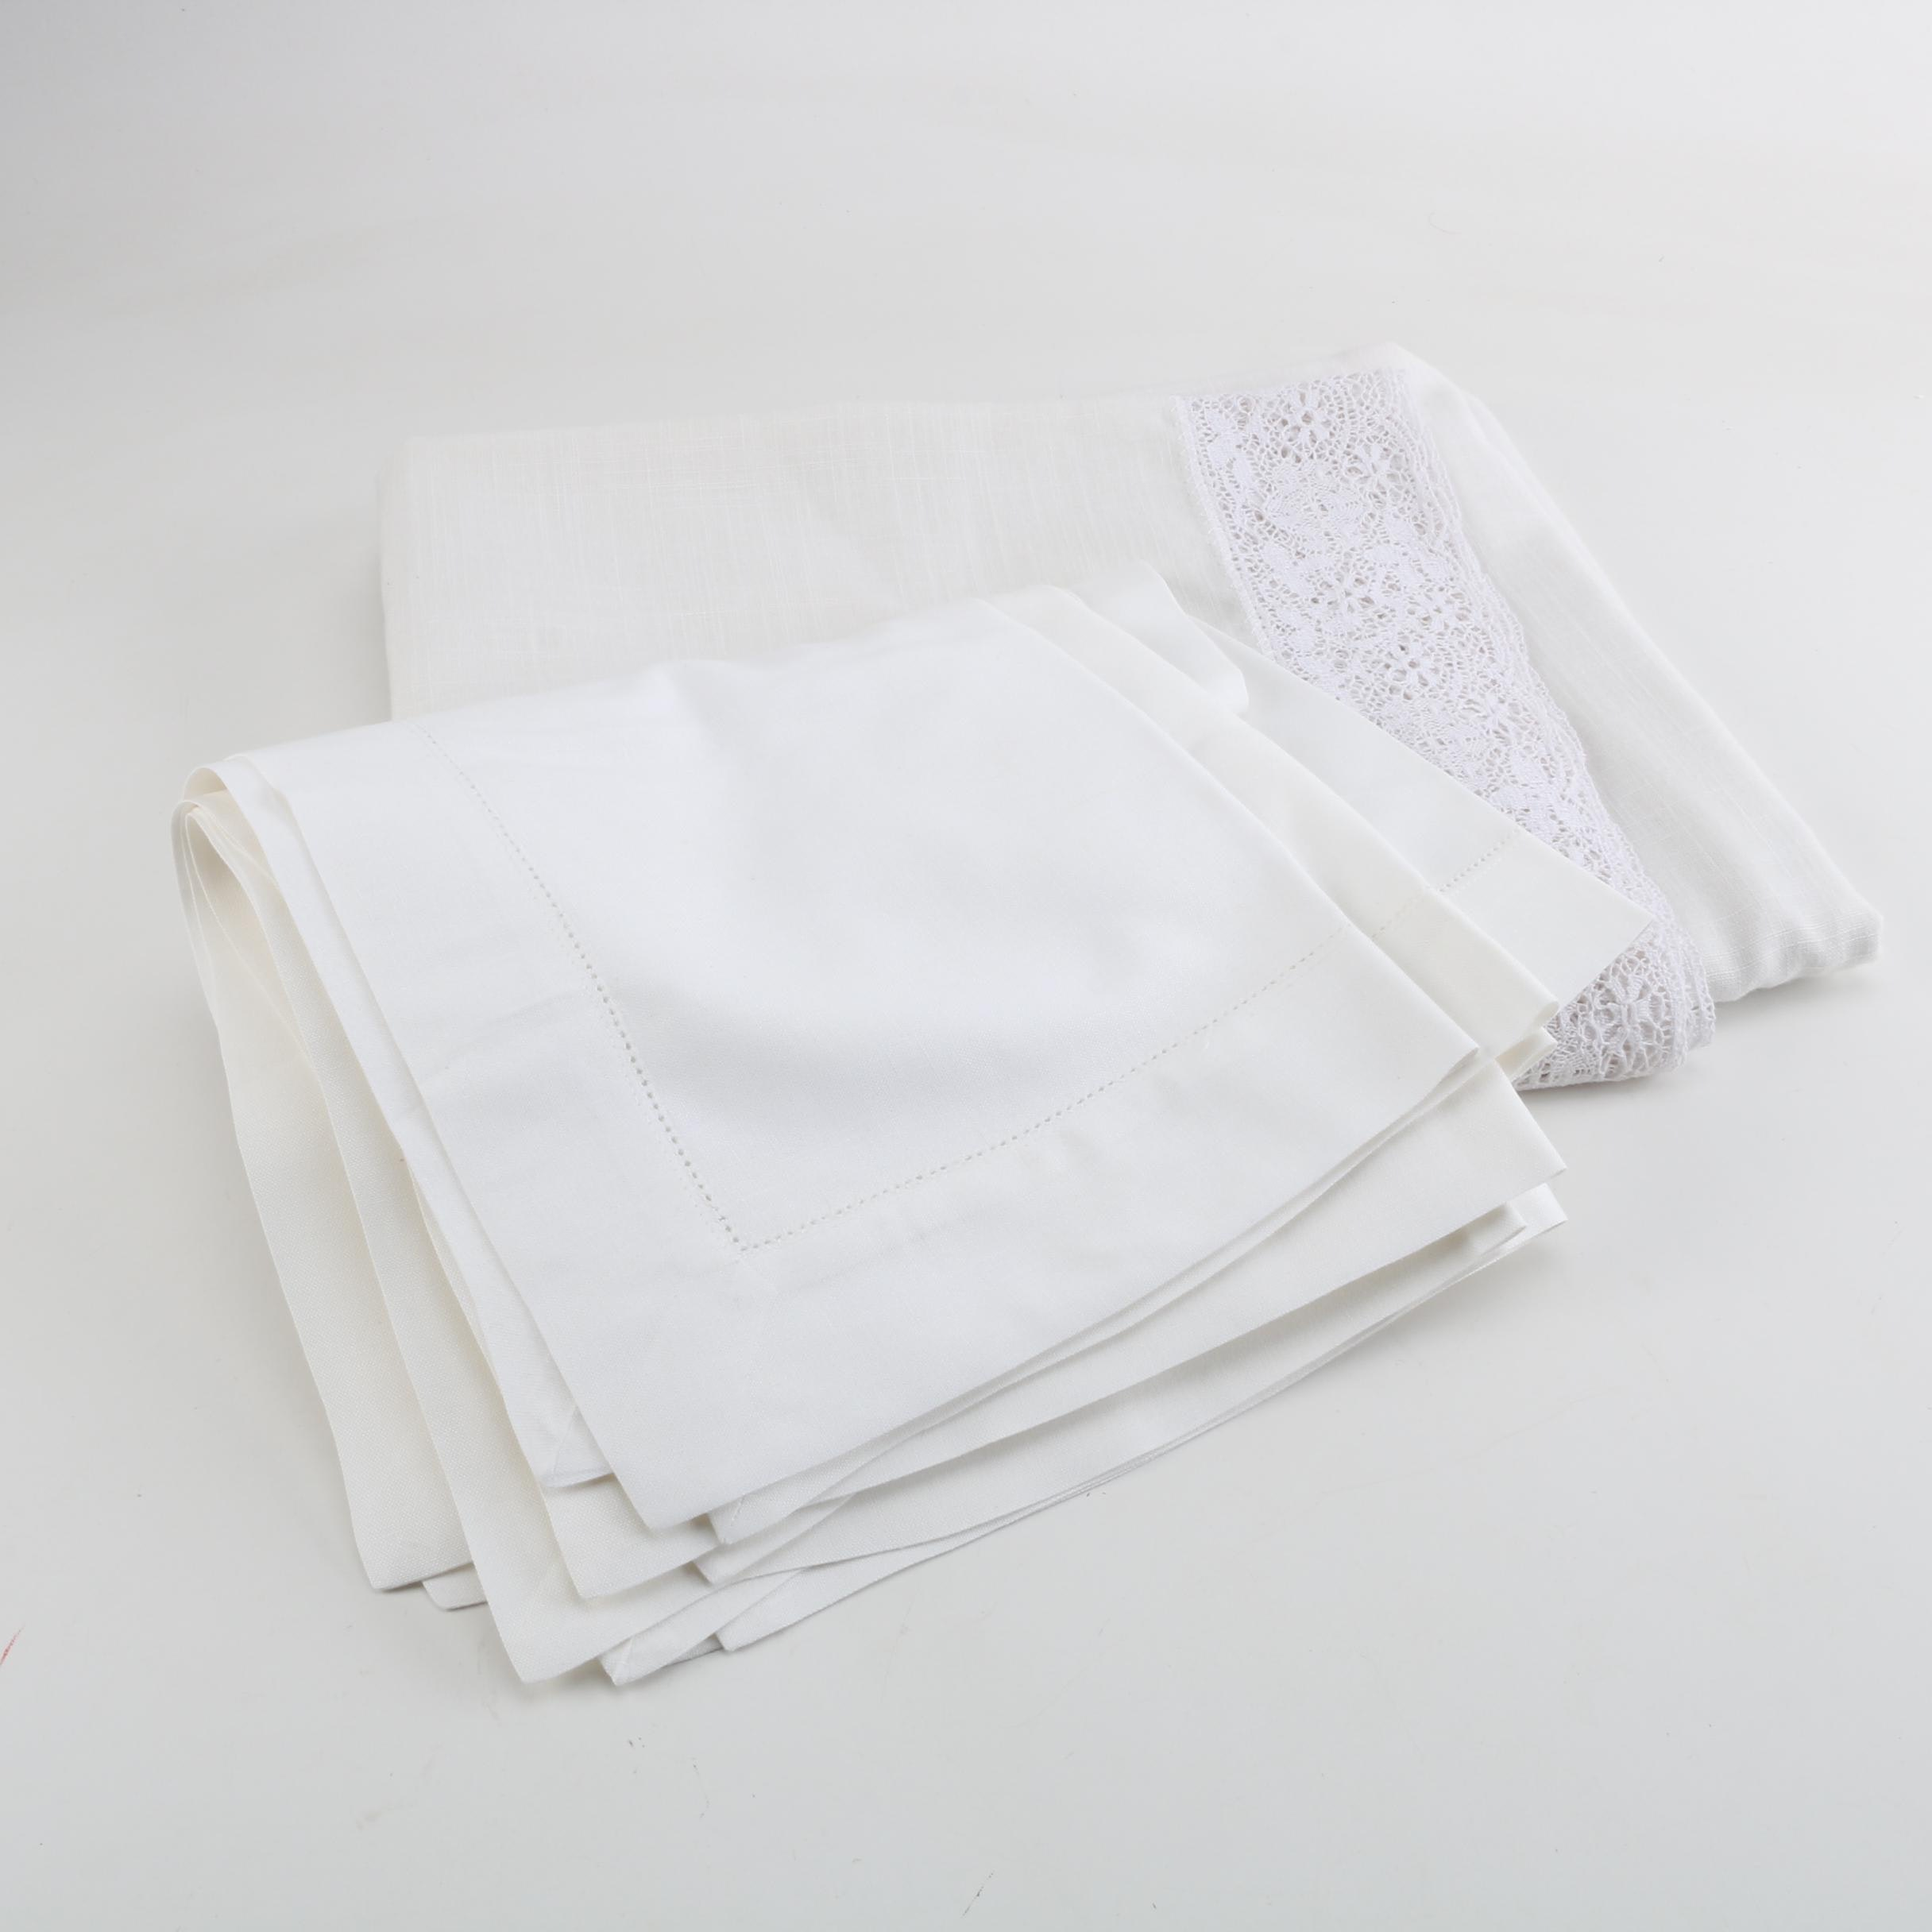 Lace Edged Linen Tablecloth and Pierced Border Napkins